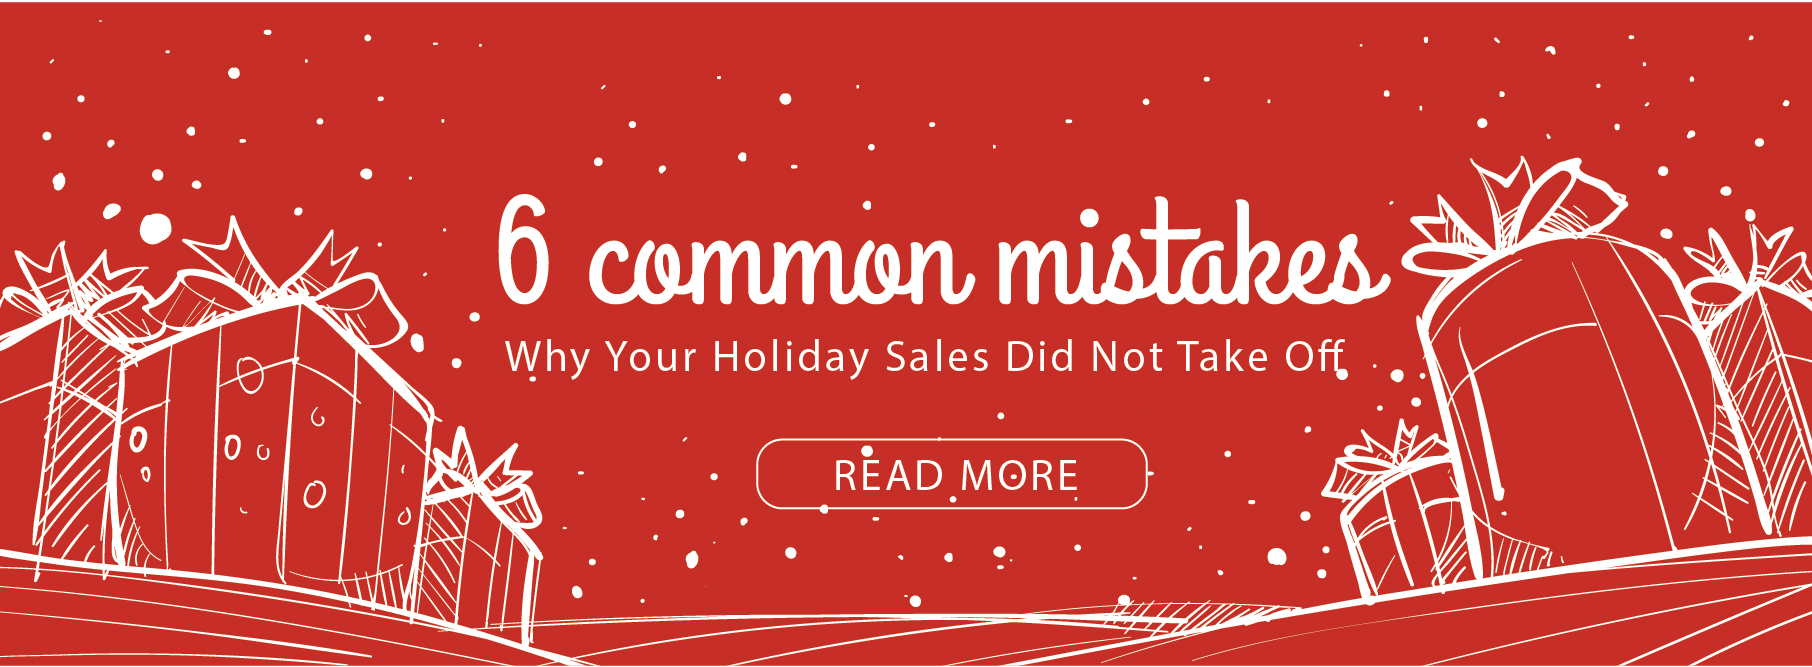 ecommerce common mistakes